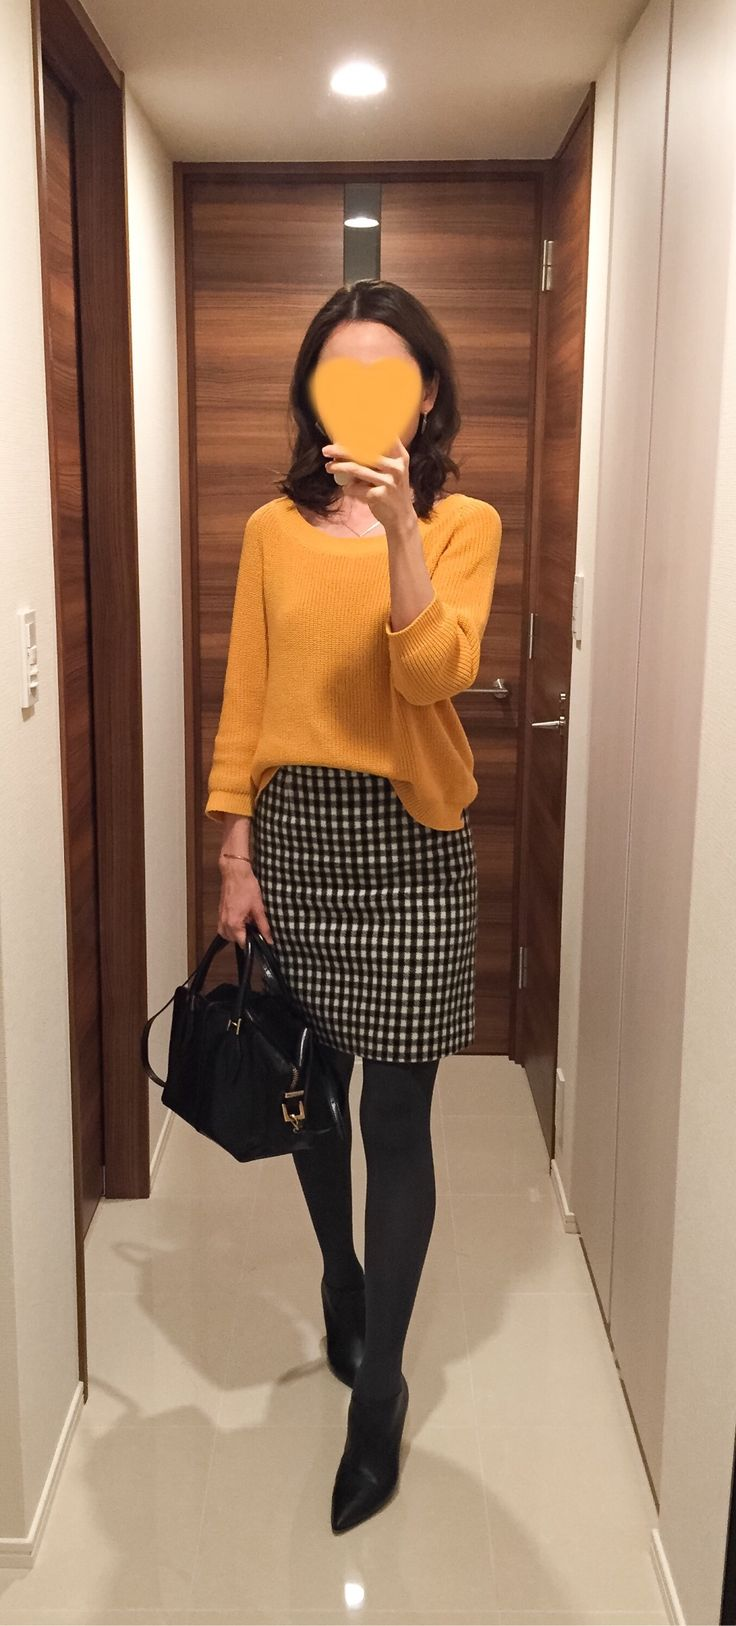 Yellow sweater: MACKINTOSH PHILOSOPHY, Houndstooth skirt: MACKINTOSH PHILOSOPHY, Bag: Tod's, Boots: Fabio Rusconi